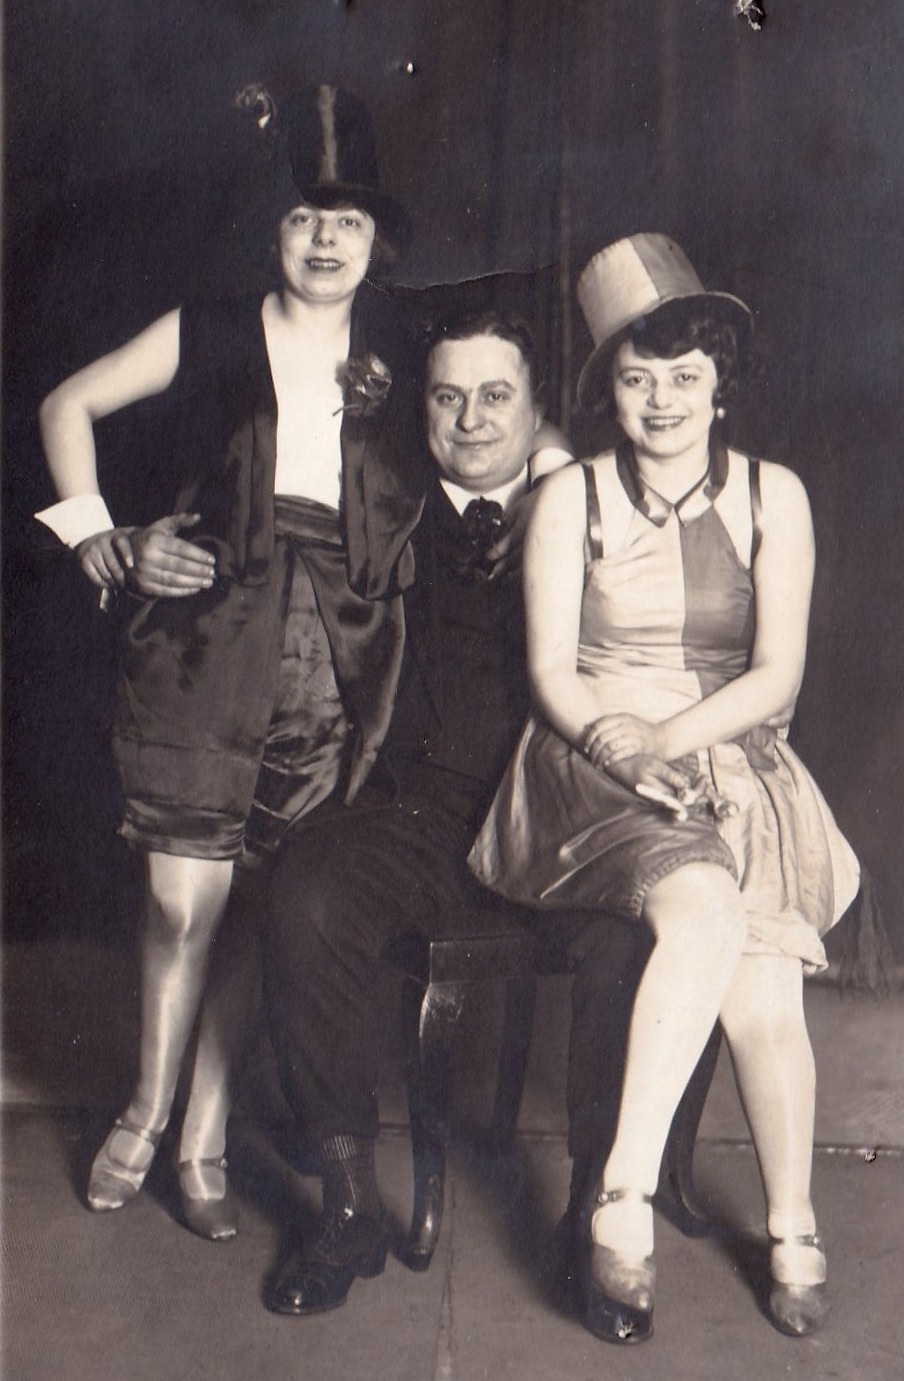 """1927  Left to right :  sister Erika, friend Hermann, and my mom, Elsa.  Germans often celebrate at a carnival called  Fasching , originally a Roman Catholic Shrovetide tradition dating back to the 13th century. Some sources say the word  Fasching  referred to the """"last call"""" before the 40-day period of Lent and is related to the English word """"fast."""""""